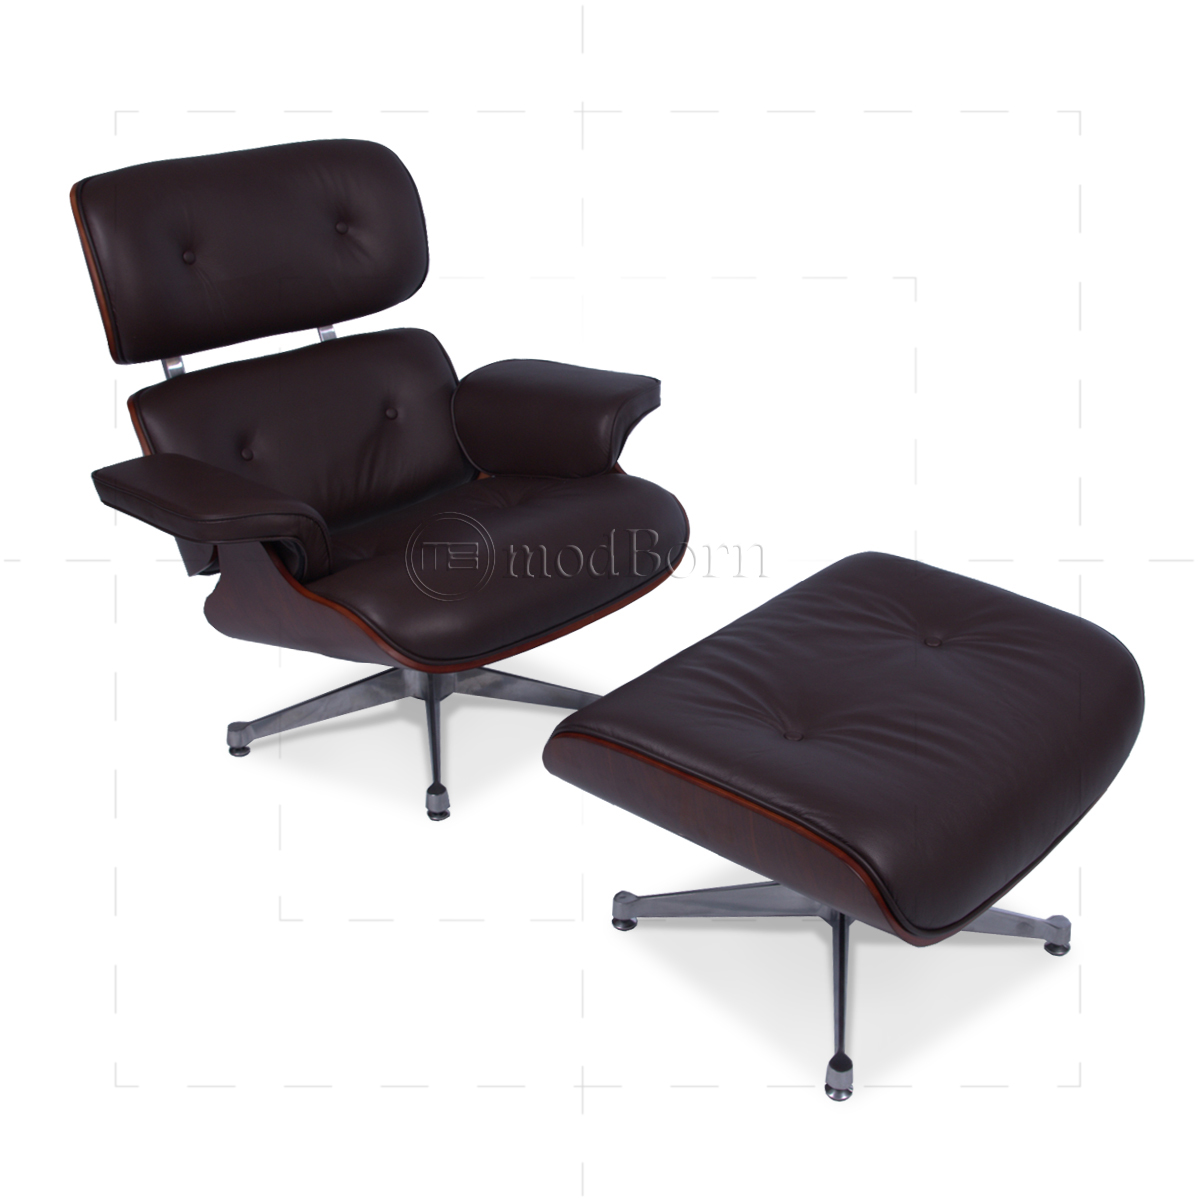 eames chair original erkennen herrlich eames chair original erkennen png auto compress cformat. Black Bedroom Furniture Sets. Home Design Ideas